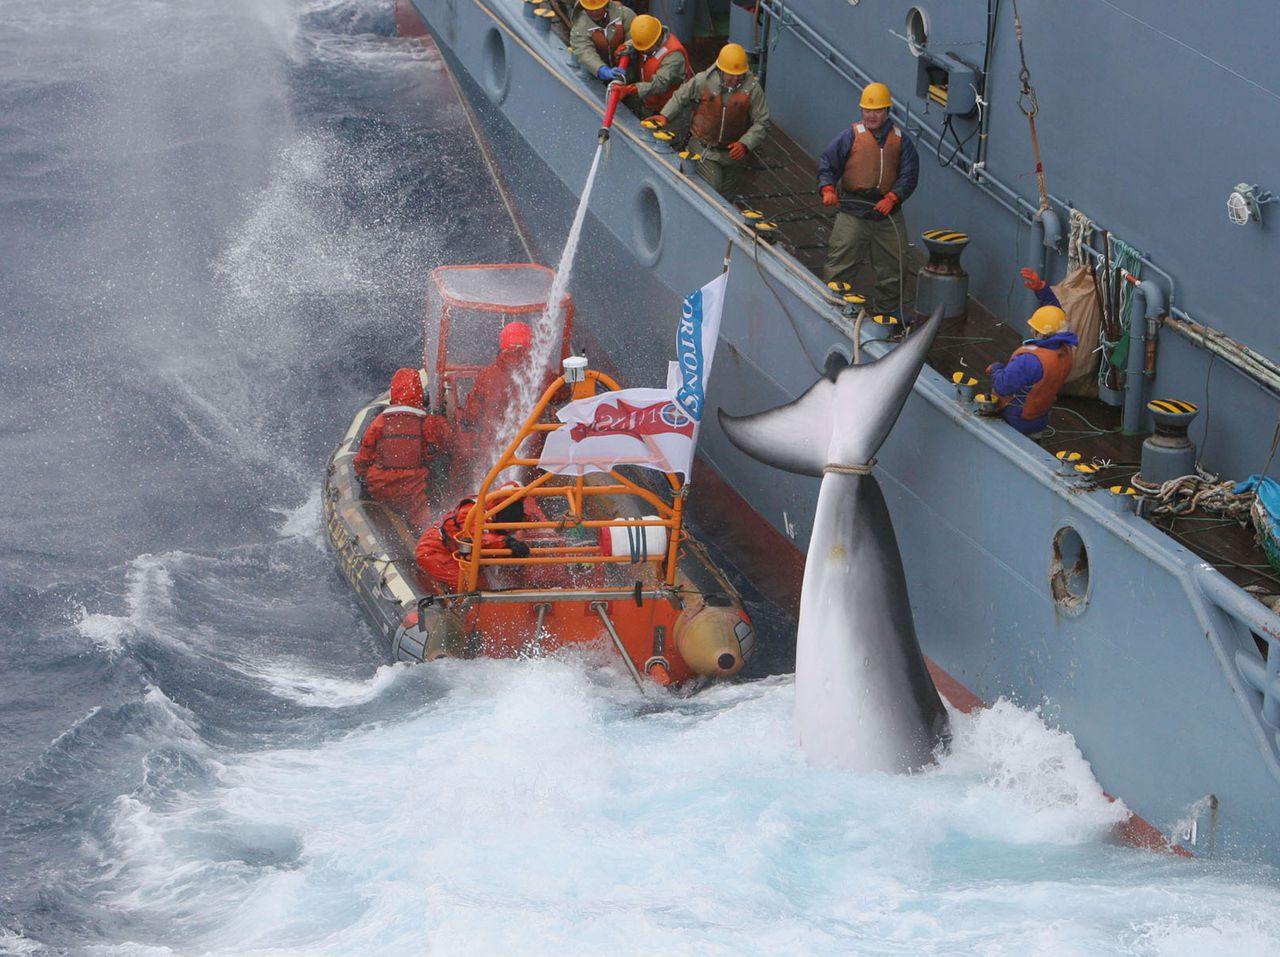 In this photo released by Greenpeace, one of the inflatables from the Greenpeace ship MY Esperanza and MY Arctic Sunrise tries to hinder the transfer of minke whales by a catcher ship of the Japanese whaling fleet to the Nisshin Maru factory ship, in Antarctic seas in the Southern Ocean, Friday Jan. 6 2006. Greenpeace reported at least 20 minke whales had been slaughtered in the past 48 hours but the environmental activist group claimed some success, maintaining its tactics of harassment had allowed other whales to escape the harpoons. (AP Photo / Greenpeace / Kate Davison, HO) ** NO SALES NO ARCHIVE **